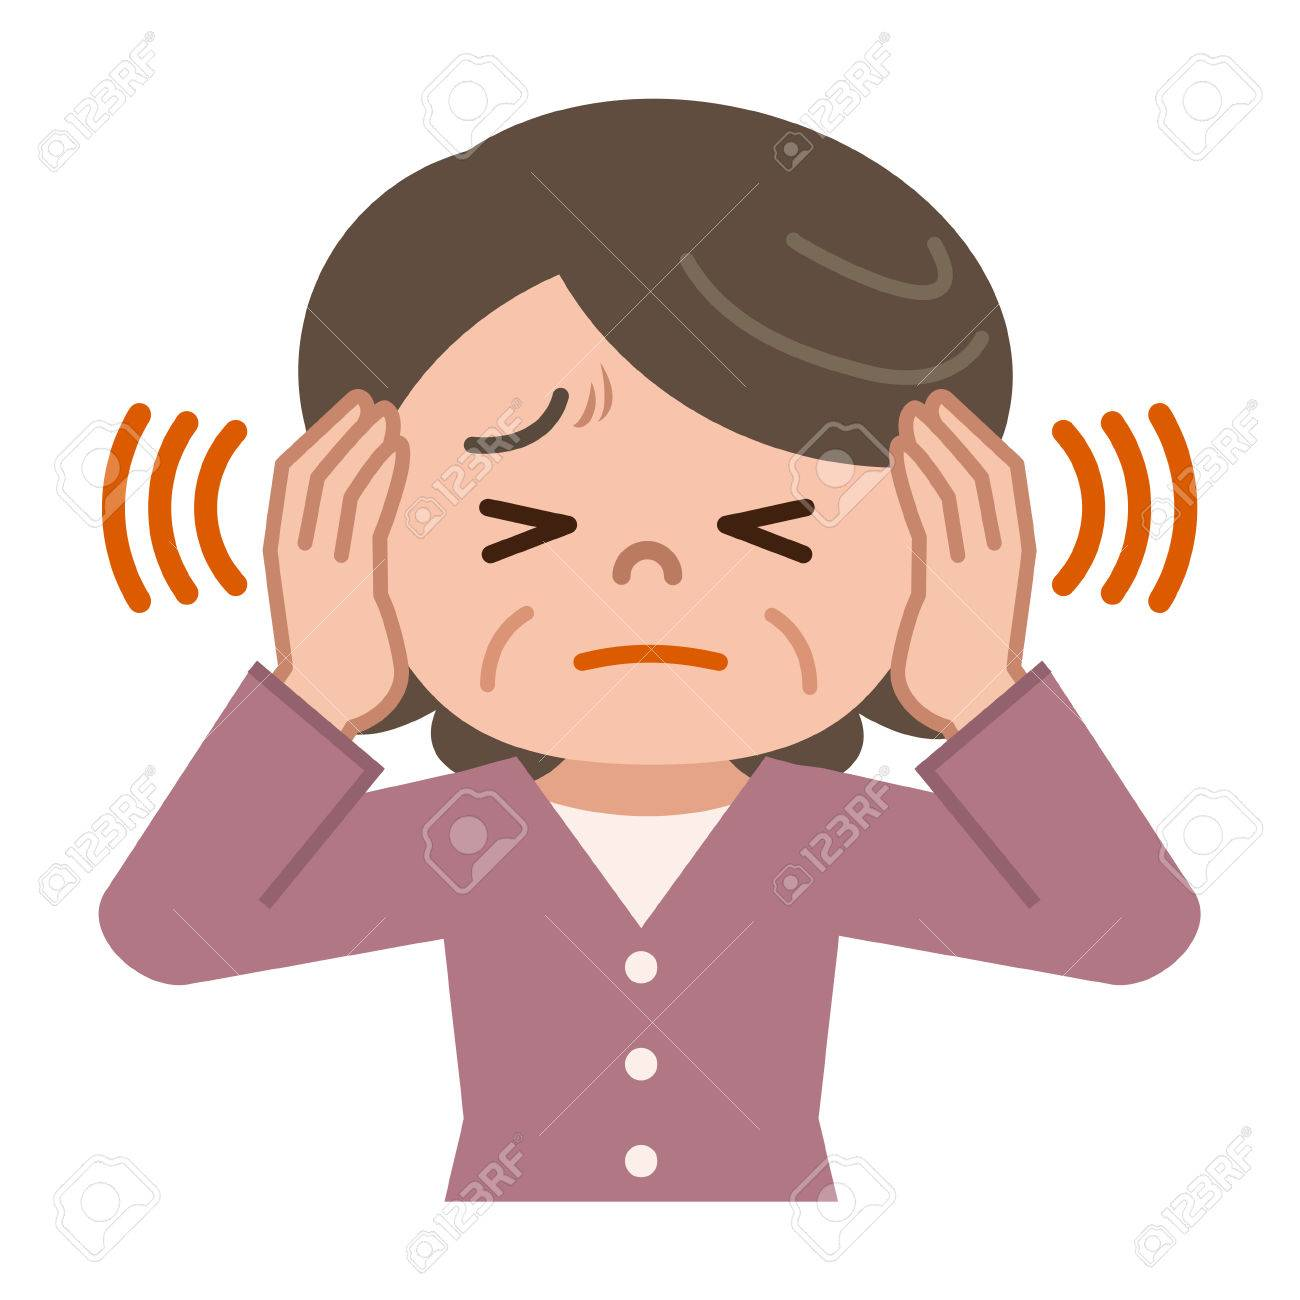 Senior Women Suffering From Tinnitus Royalty Free Cliparts, Vectors, And  Stock Illustration. Image 75884247.